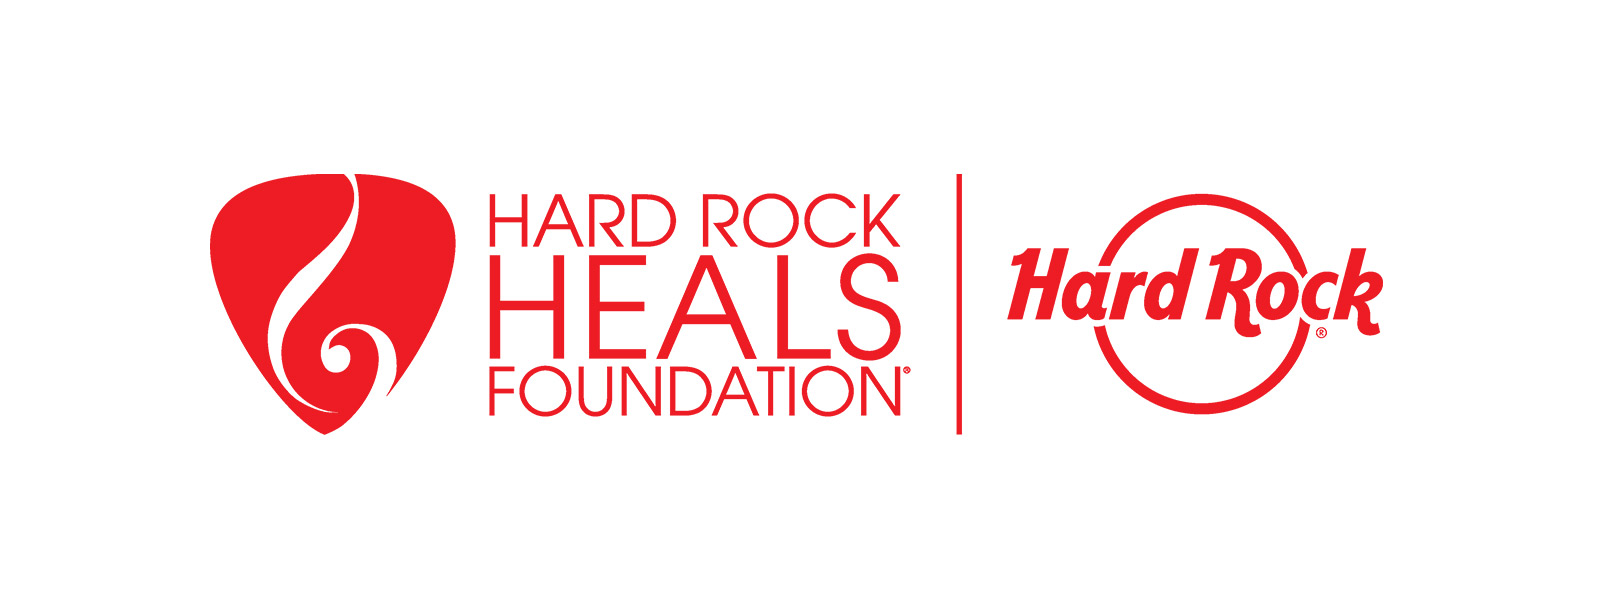 hard rock heals foundation